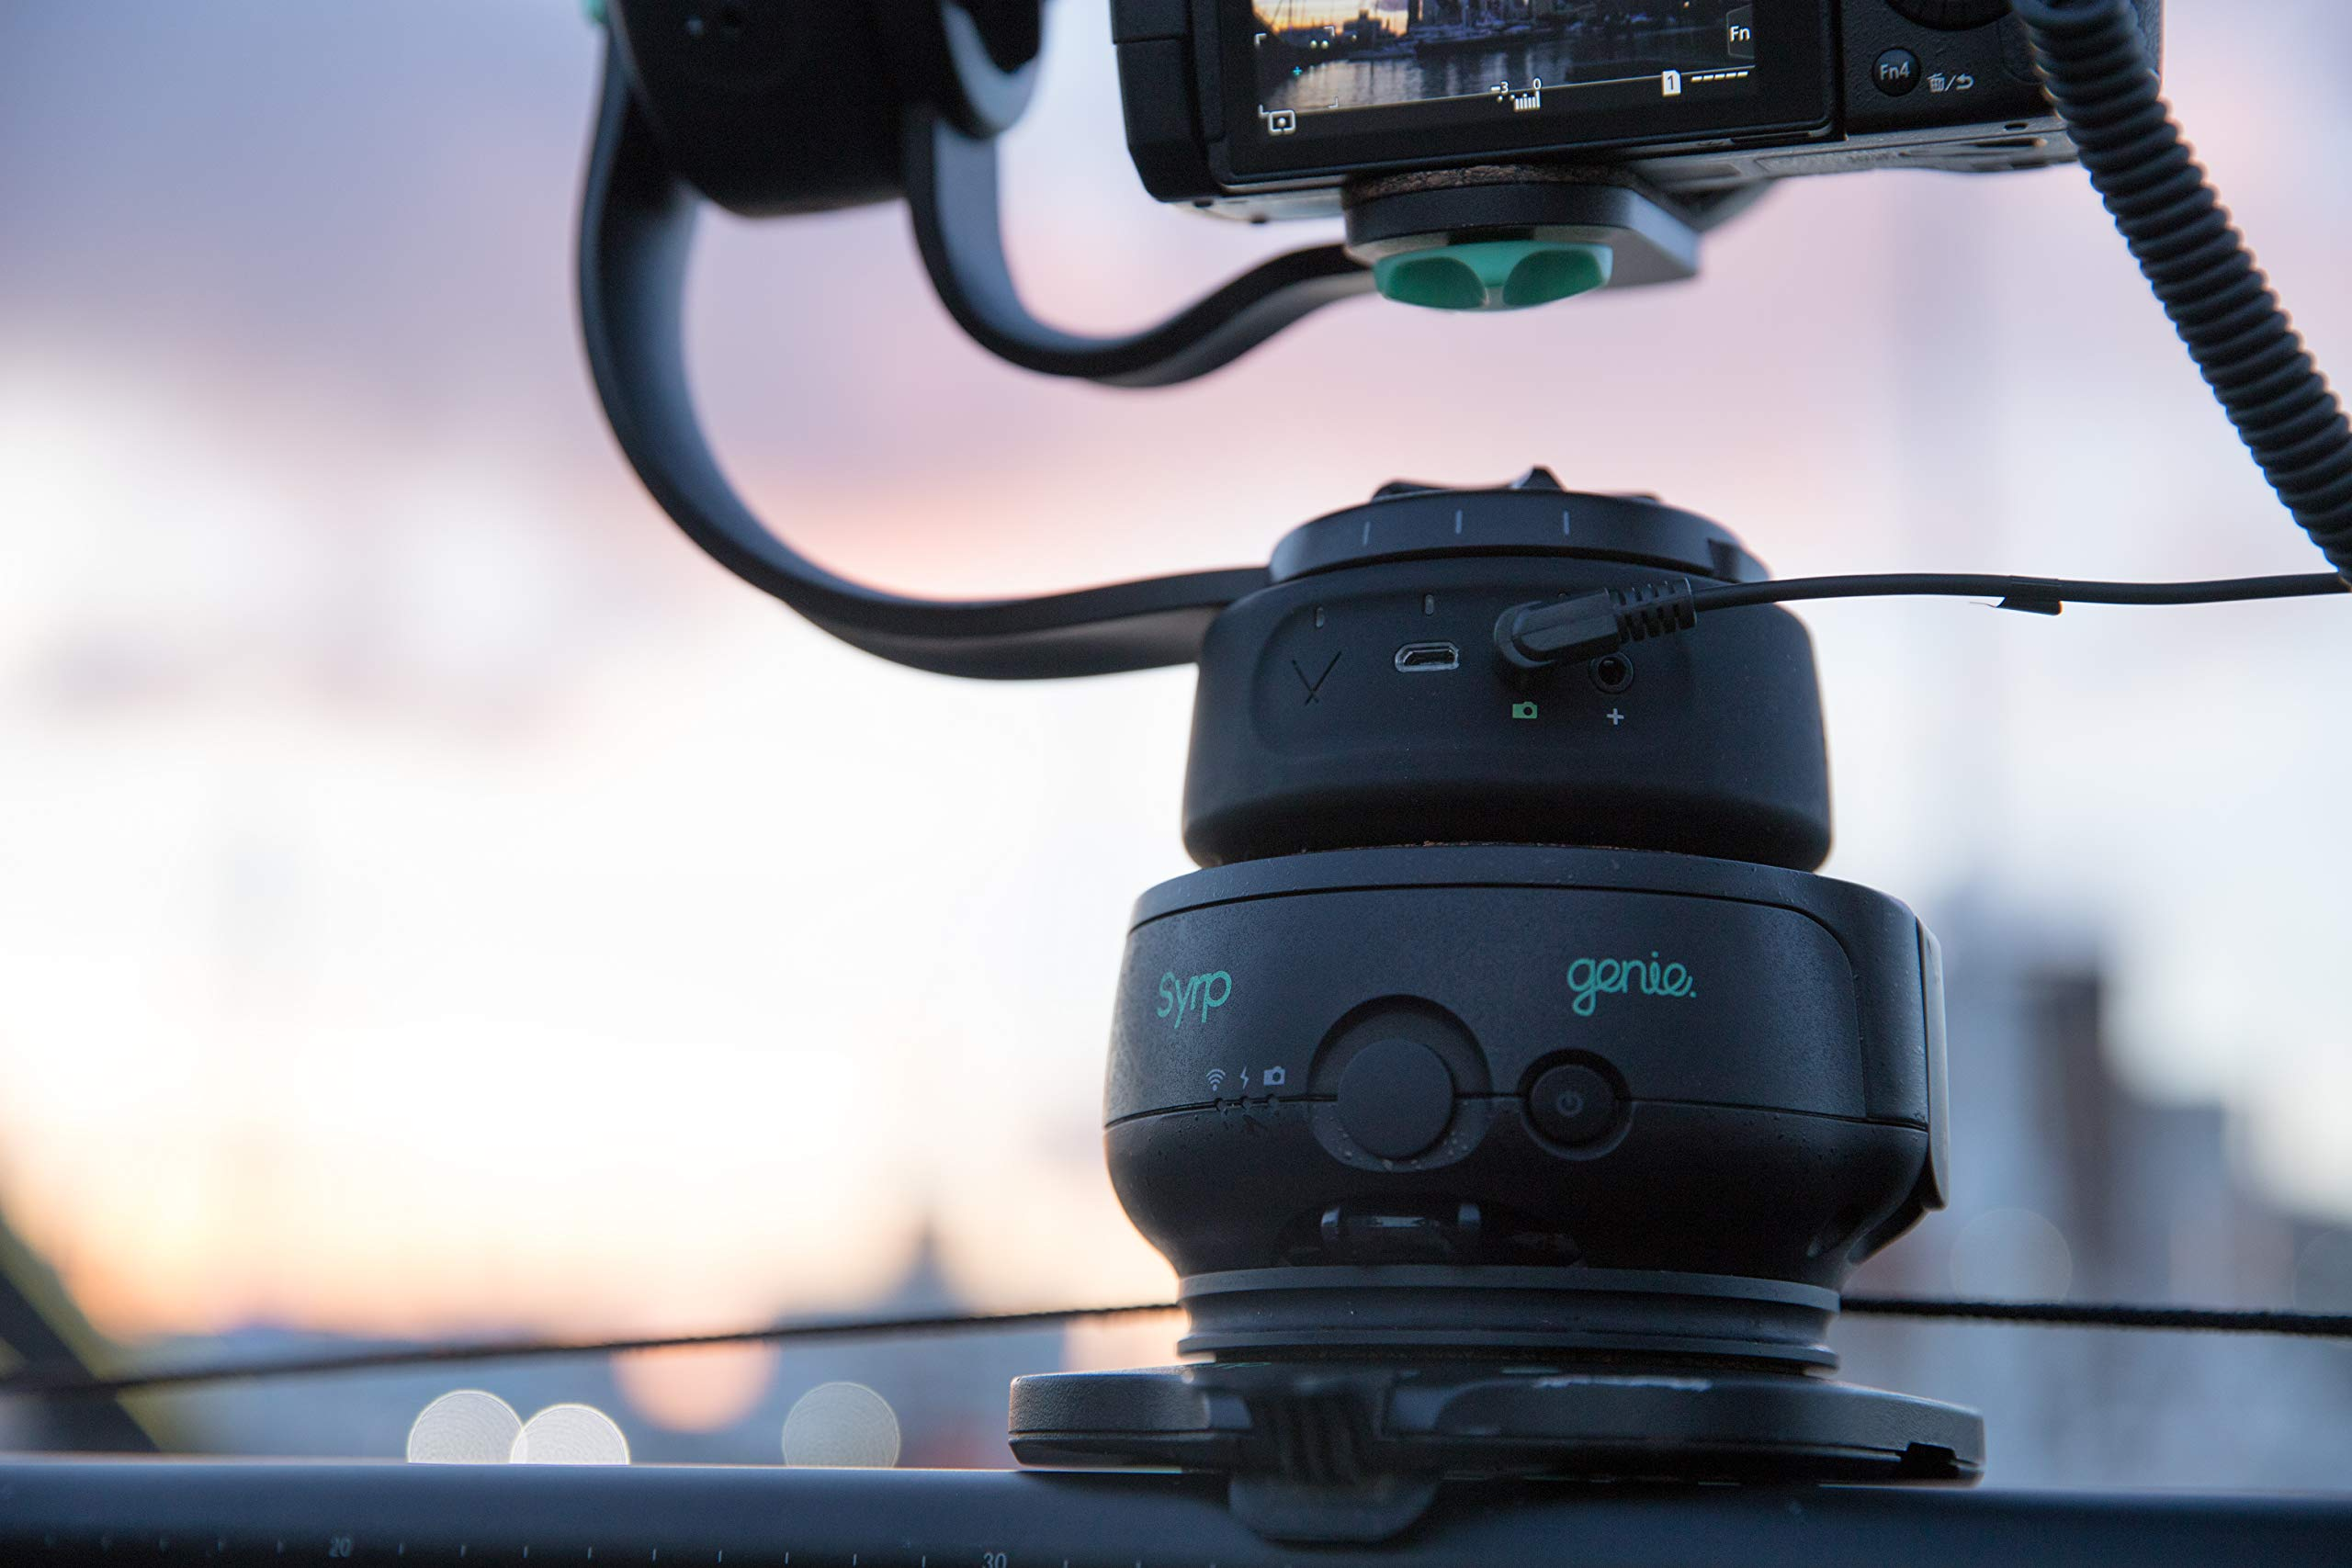 Syrp Genie Mini Camera Motion Control - Wireless, Portable & Easy to Use by SYRP (Image #7)